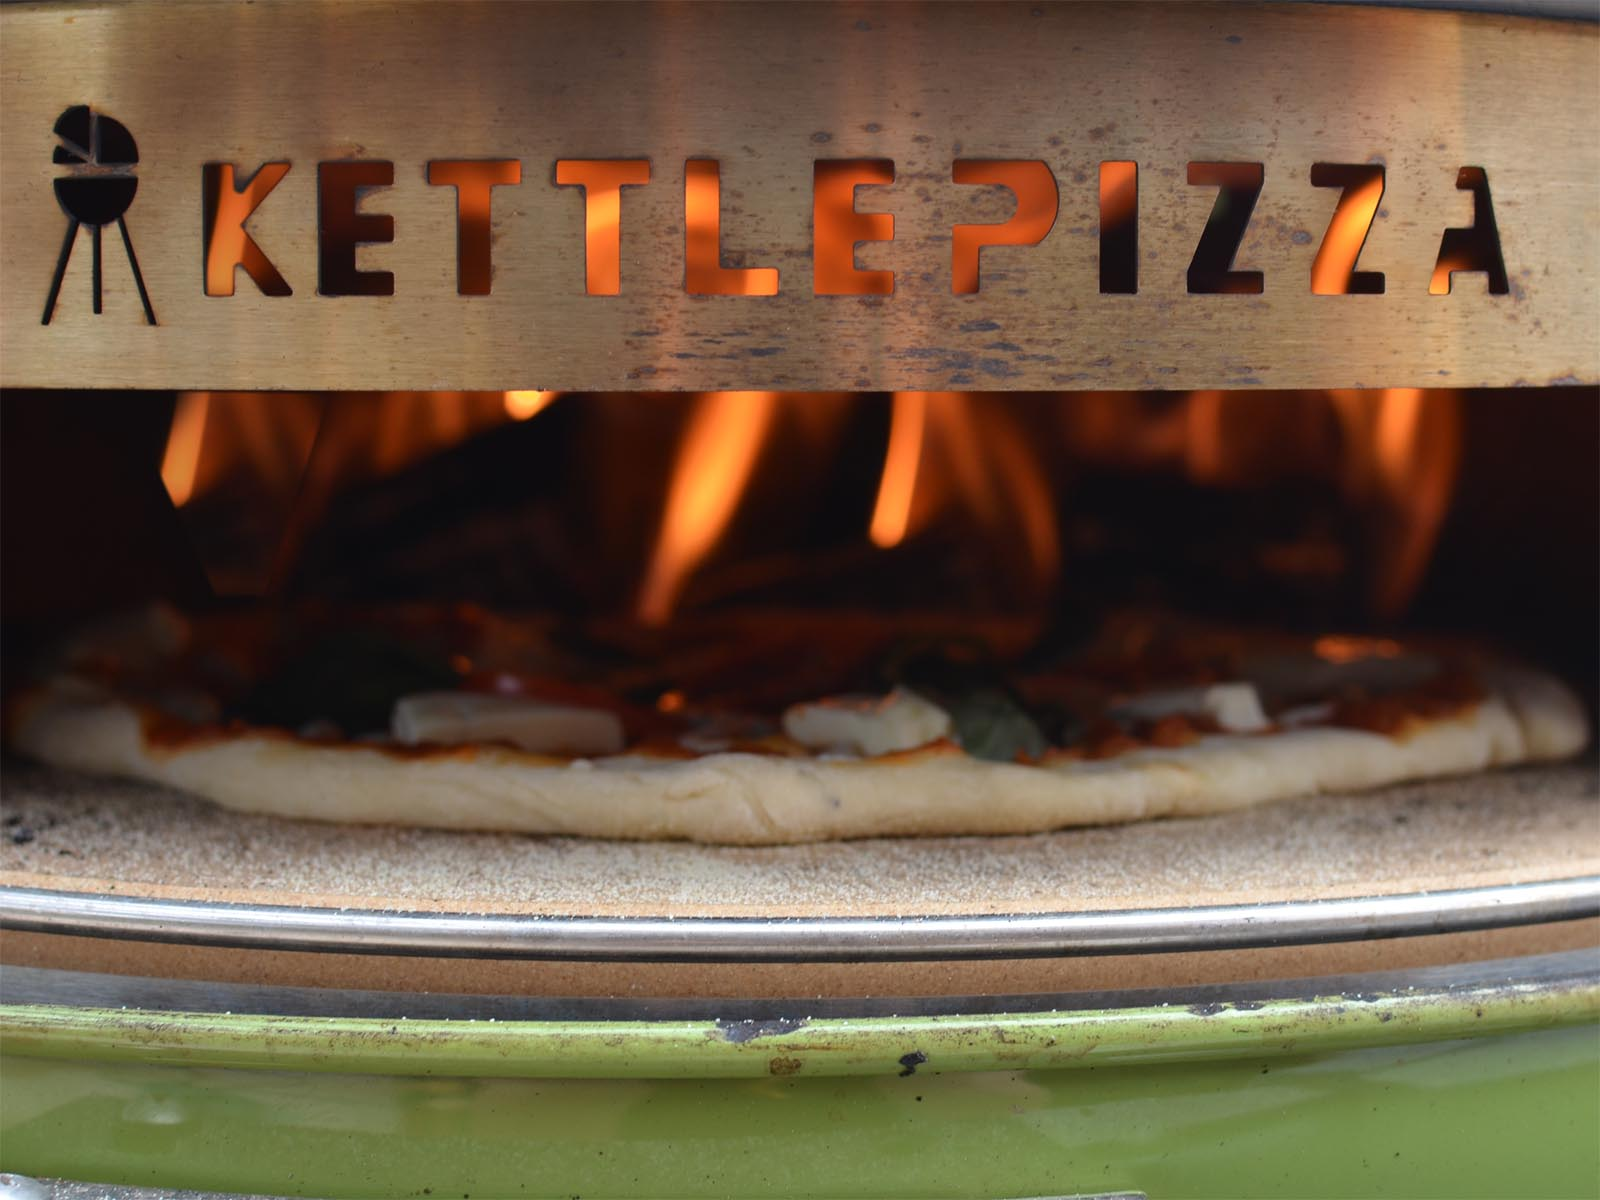 Weber Pizza Kettle Pizza Review Weber Grill Pizza Oven Weber Kettle